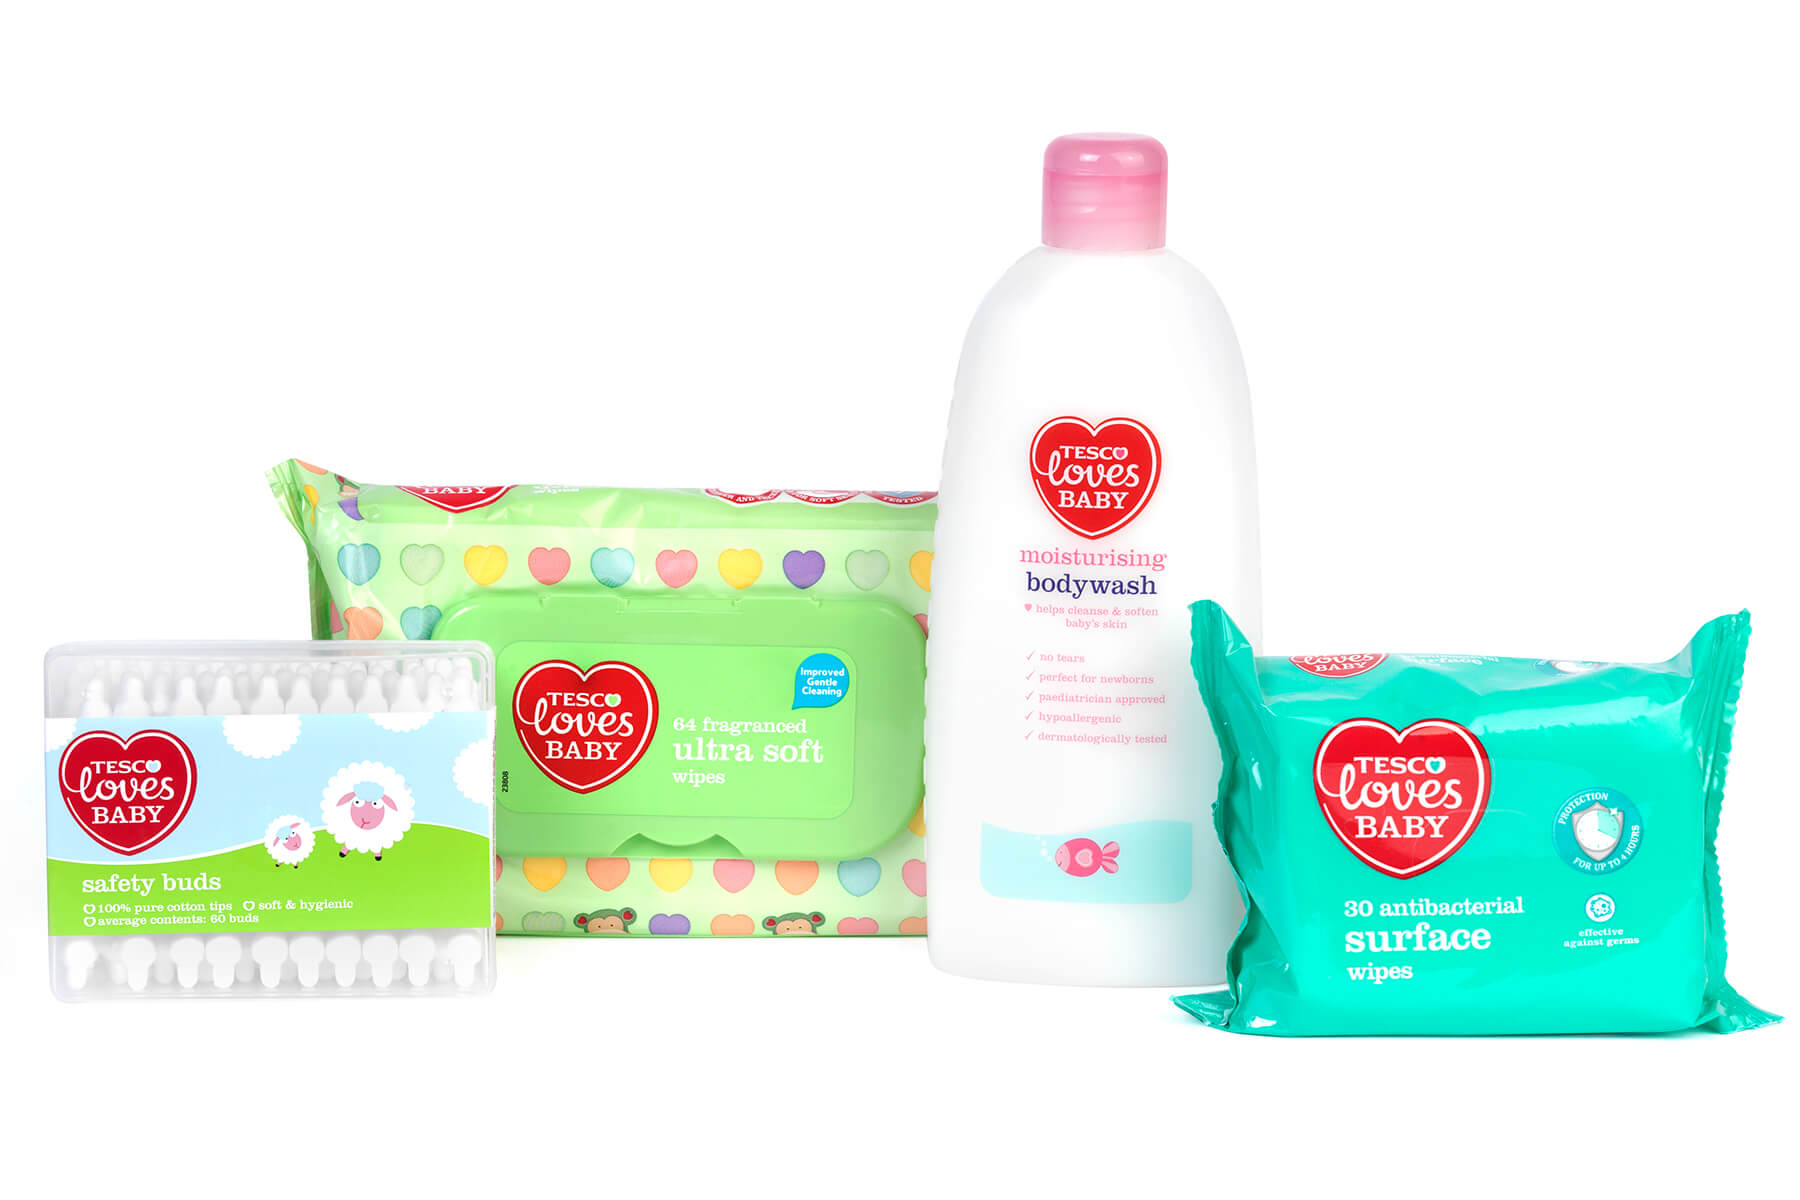 graphic design agency - client Tesco baby care